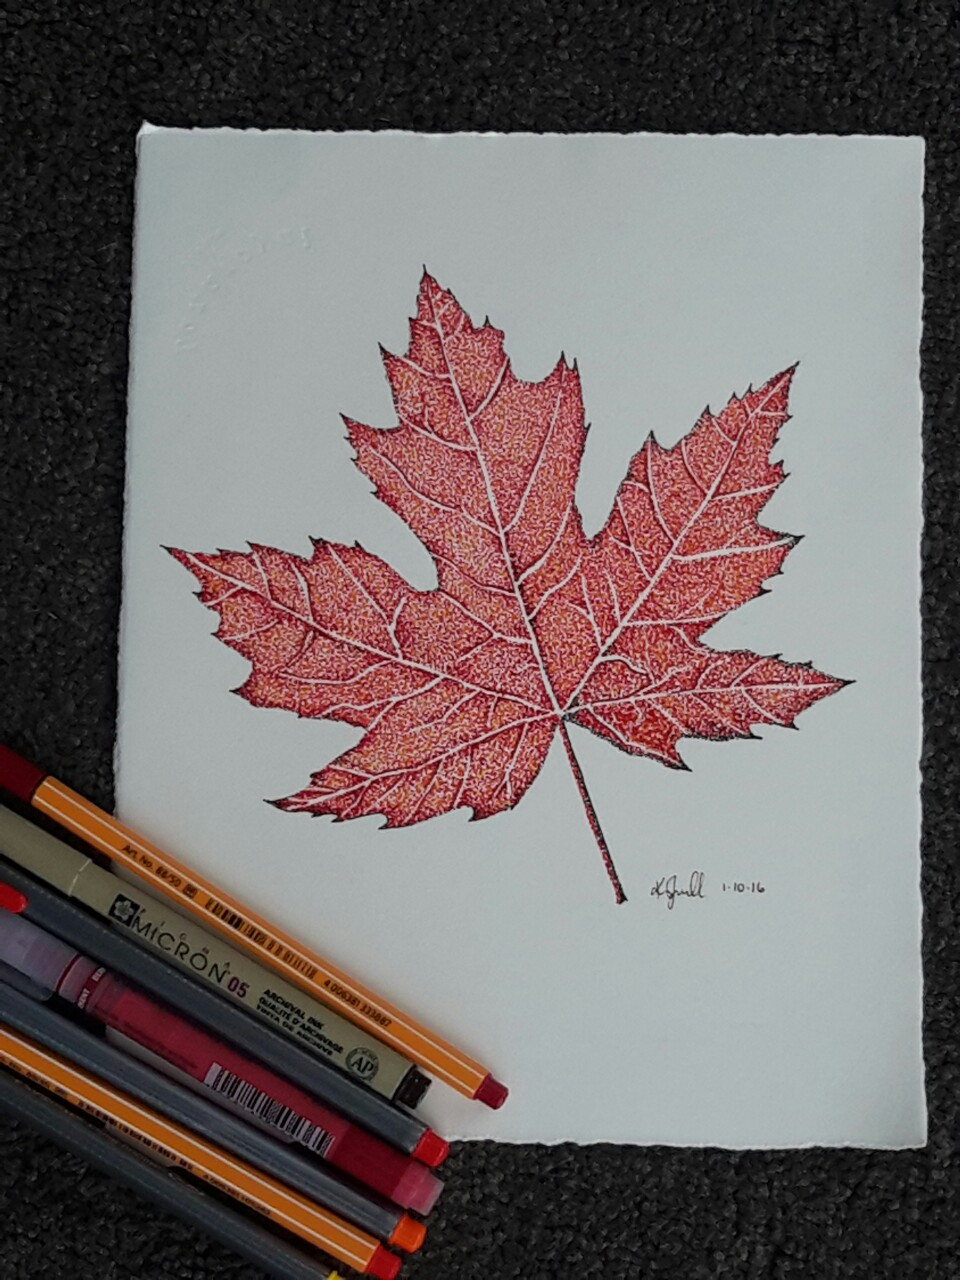 960x1280 Pointillism Drawing Of The Canadian Maple Leaf By Kristin.ivill